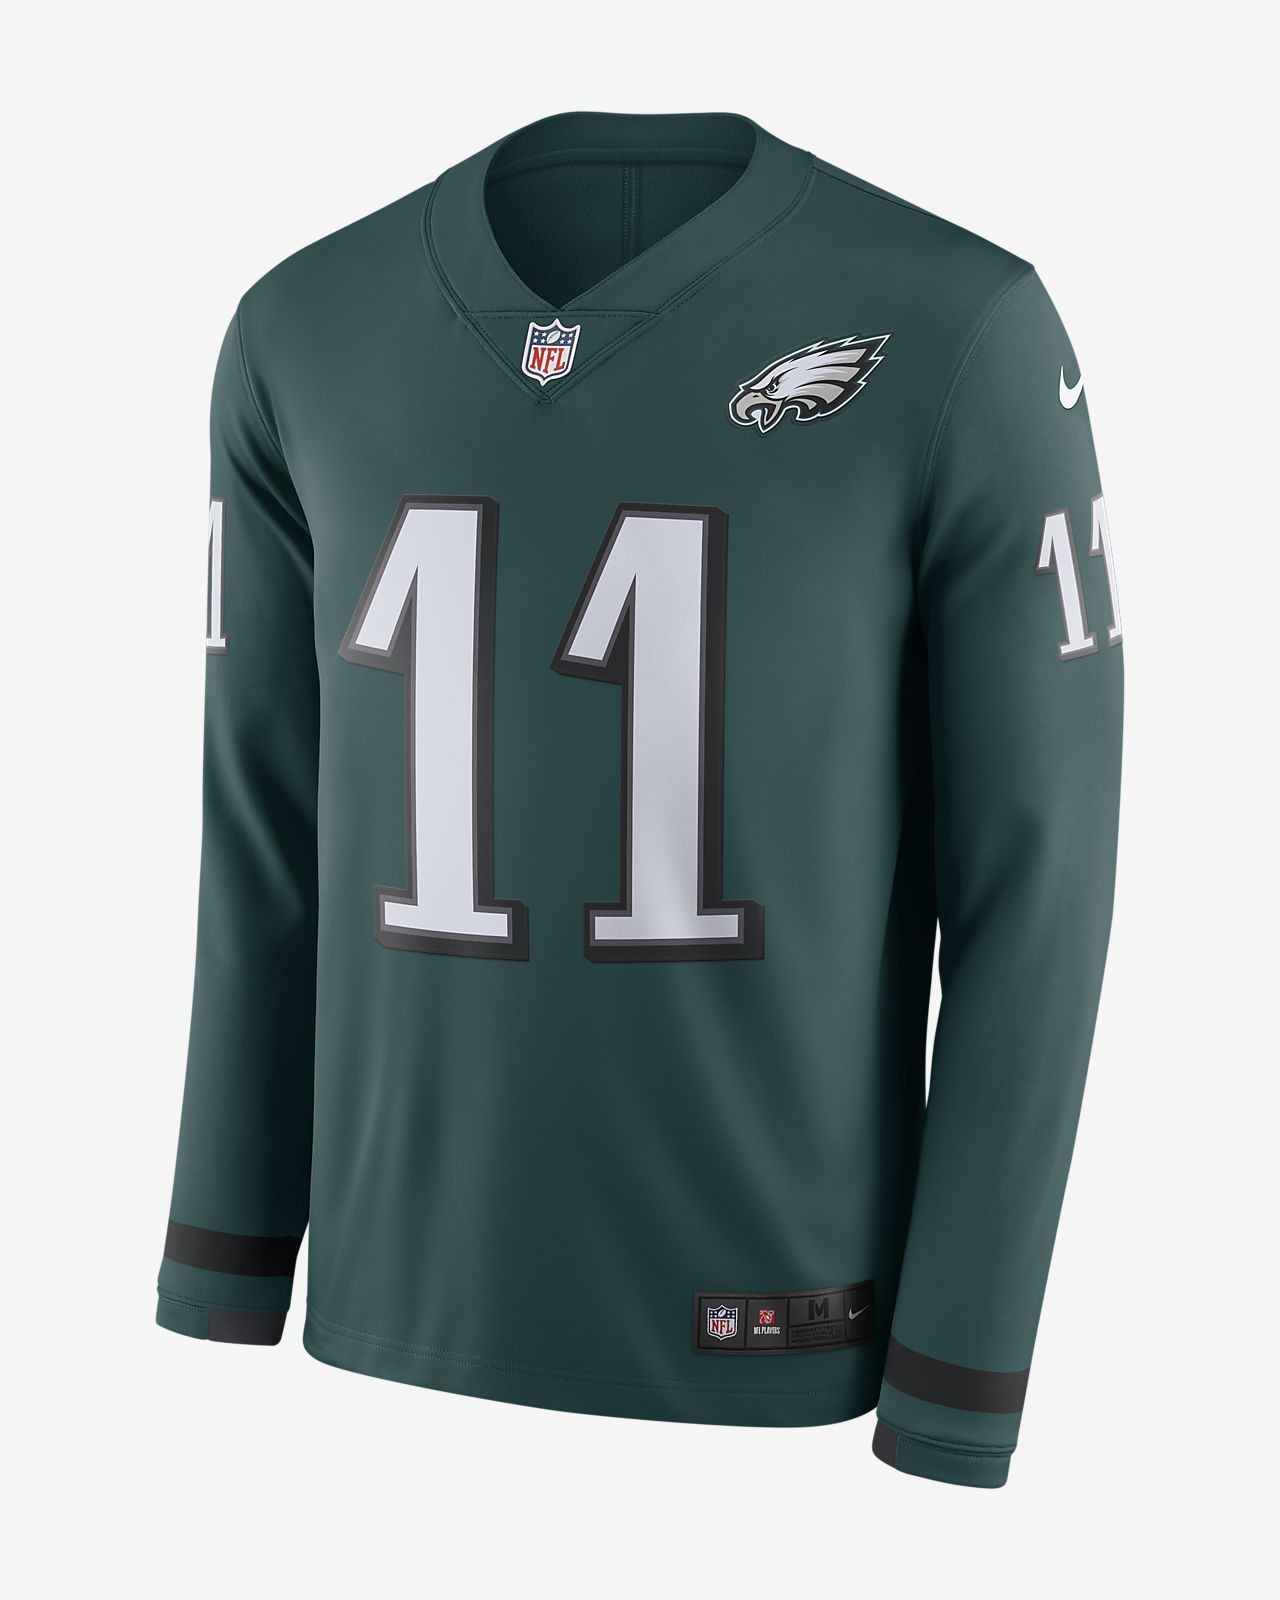 30d9d109c4c NFL Philadelphia Eagles Jersey (Carson Wentz) Men s Long-Sleeve ...